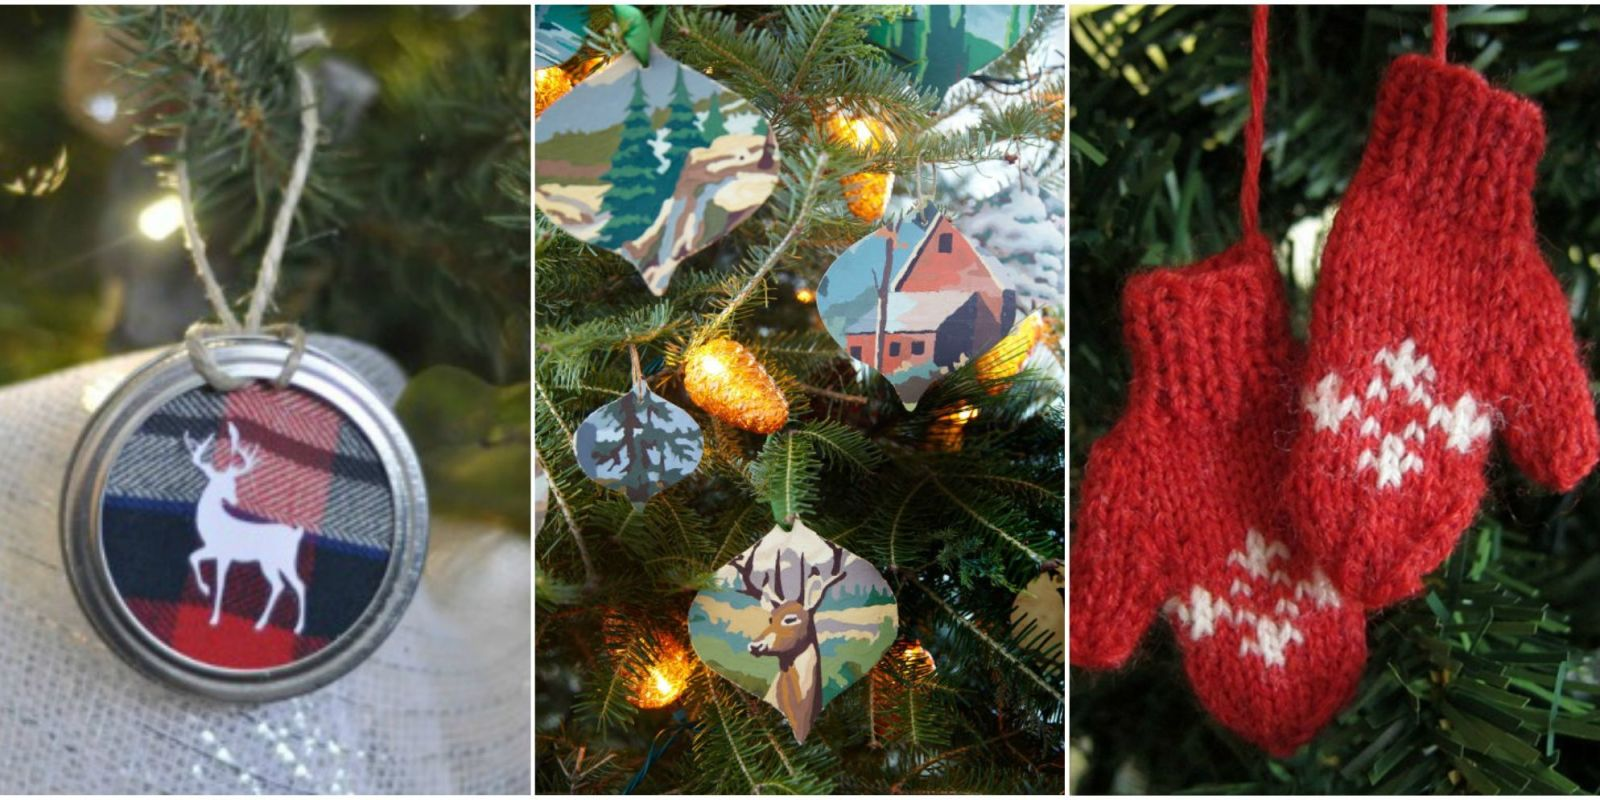 55 homemade christmas ornaments diy crafts with for Homemade tree decorations